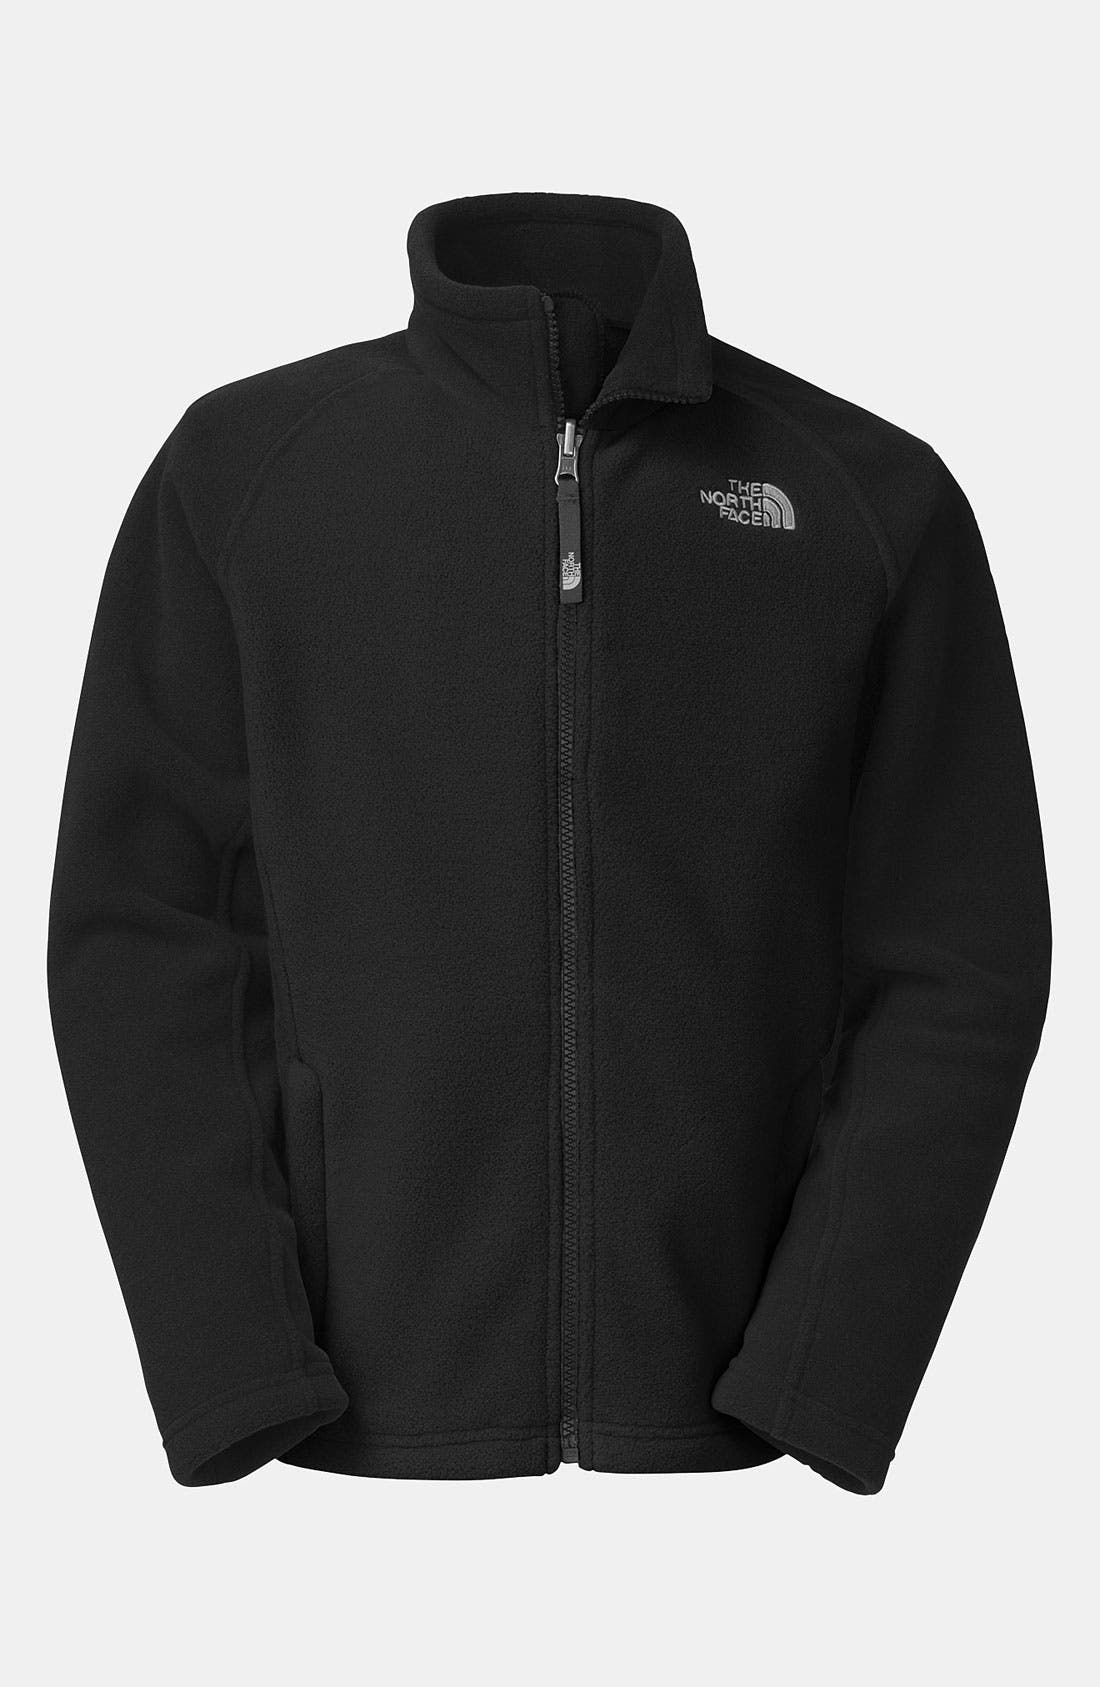 Main Image - The North Face 'Lil' RDT' Fleece Jacket (Big Boys)